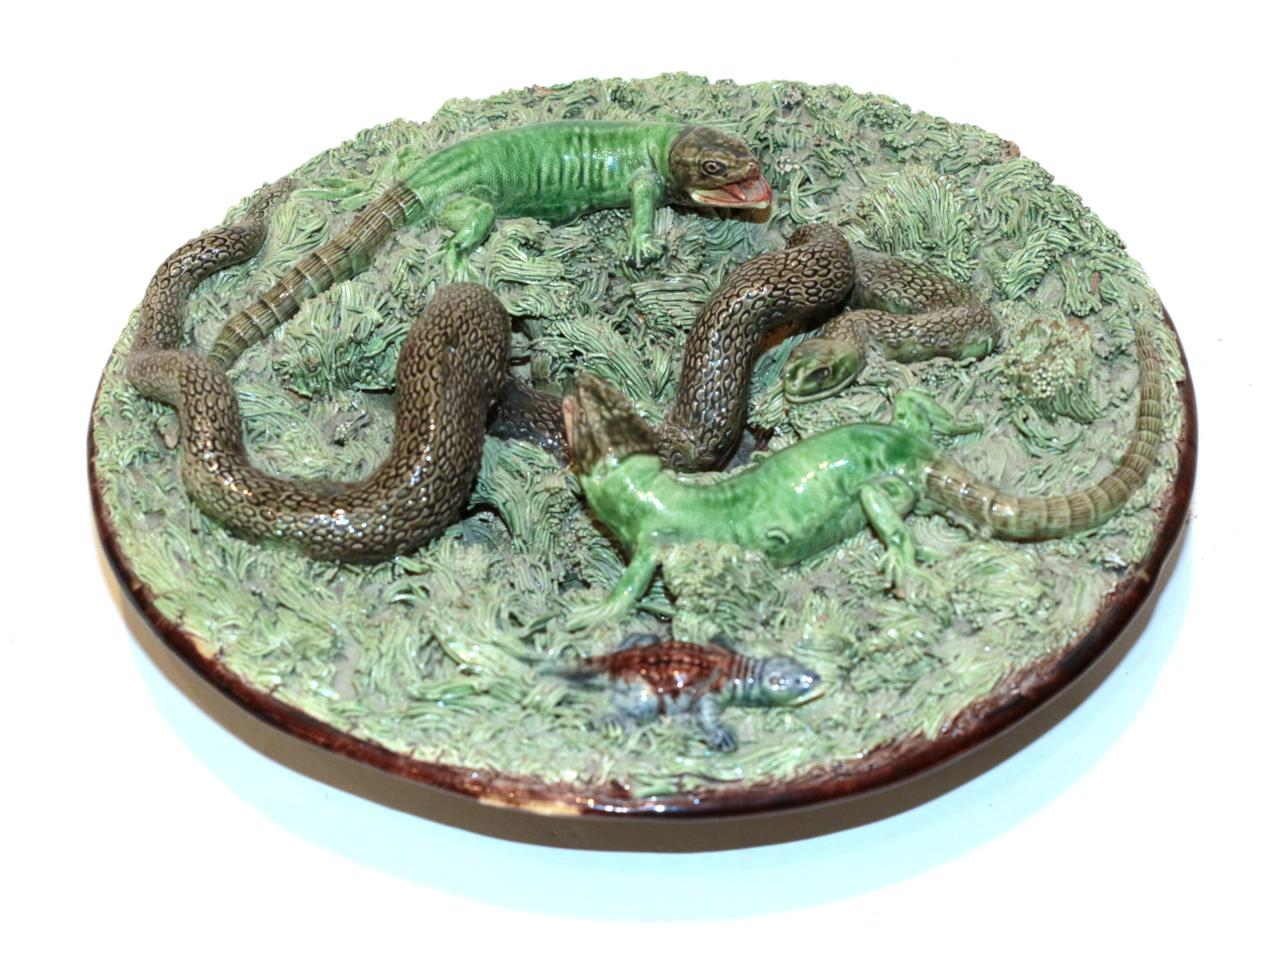 Lot 39 - A Pallisy ware dish depicting snakes and lizards